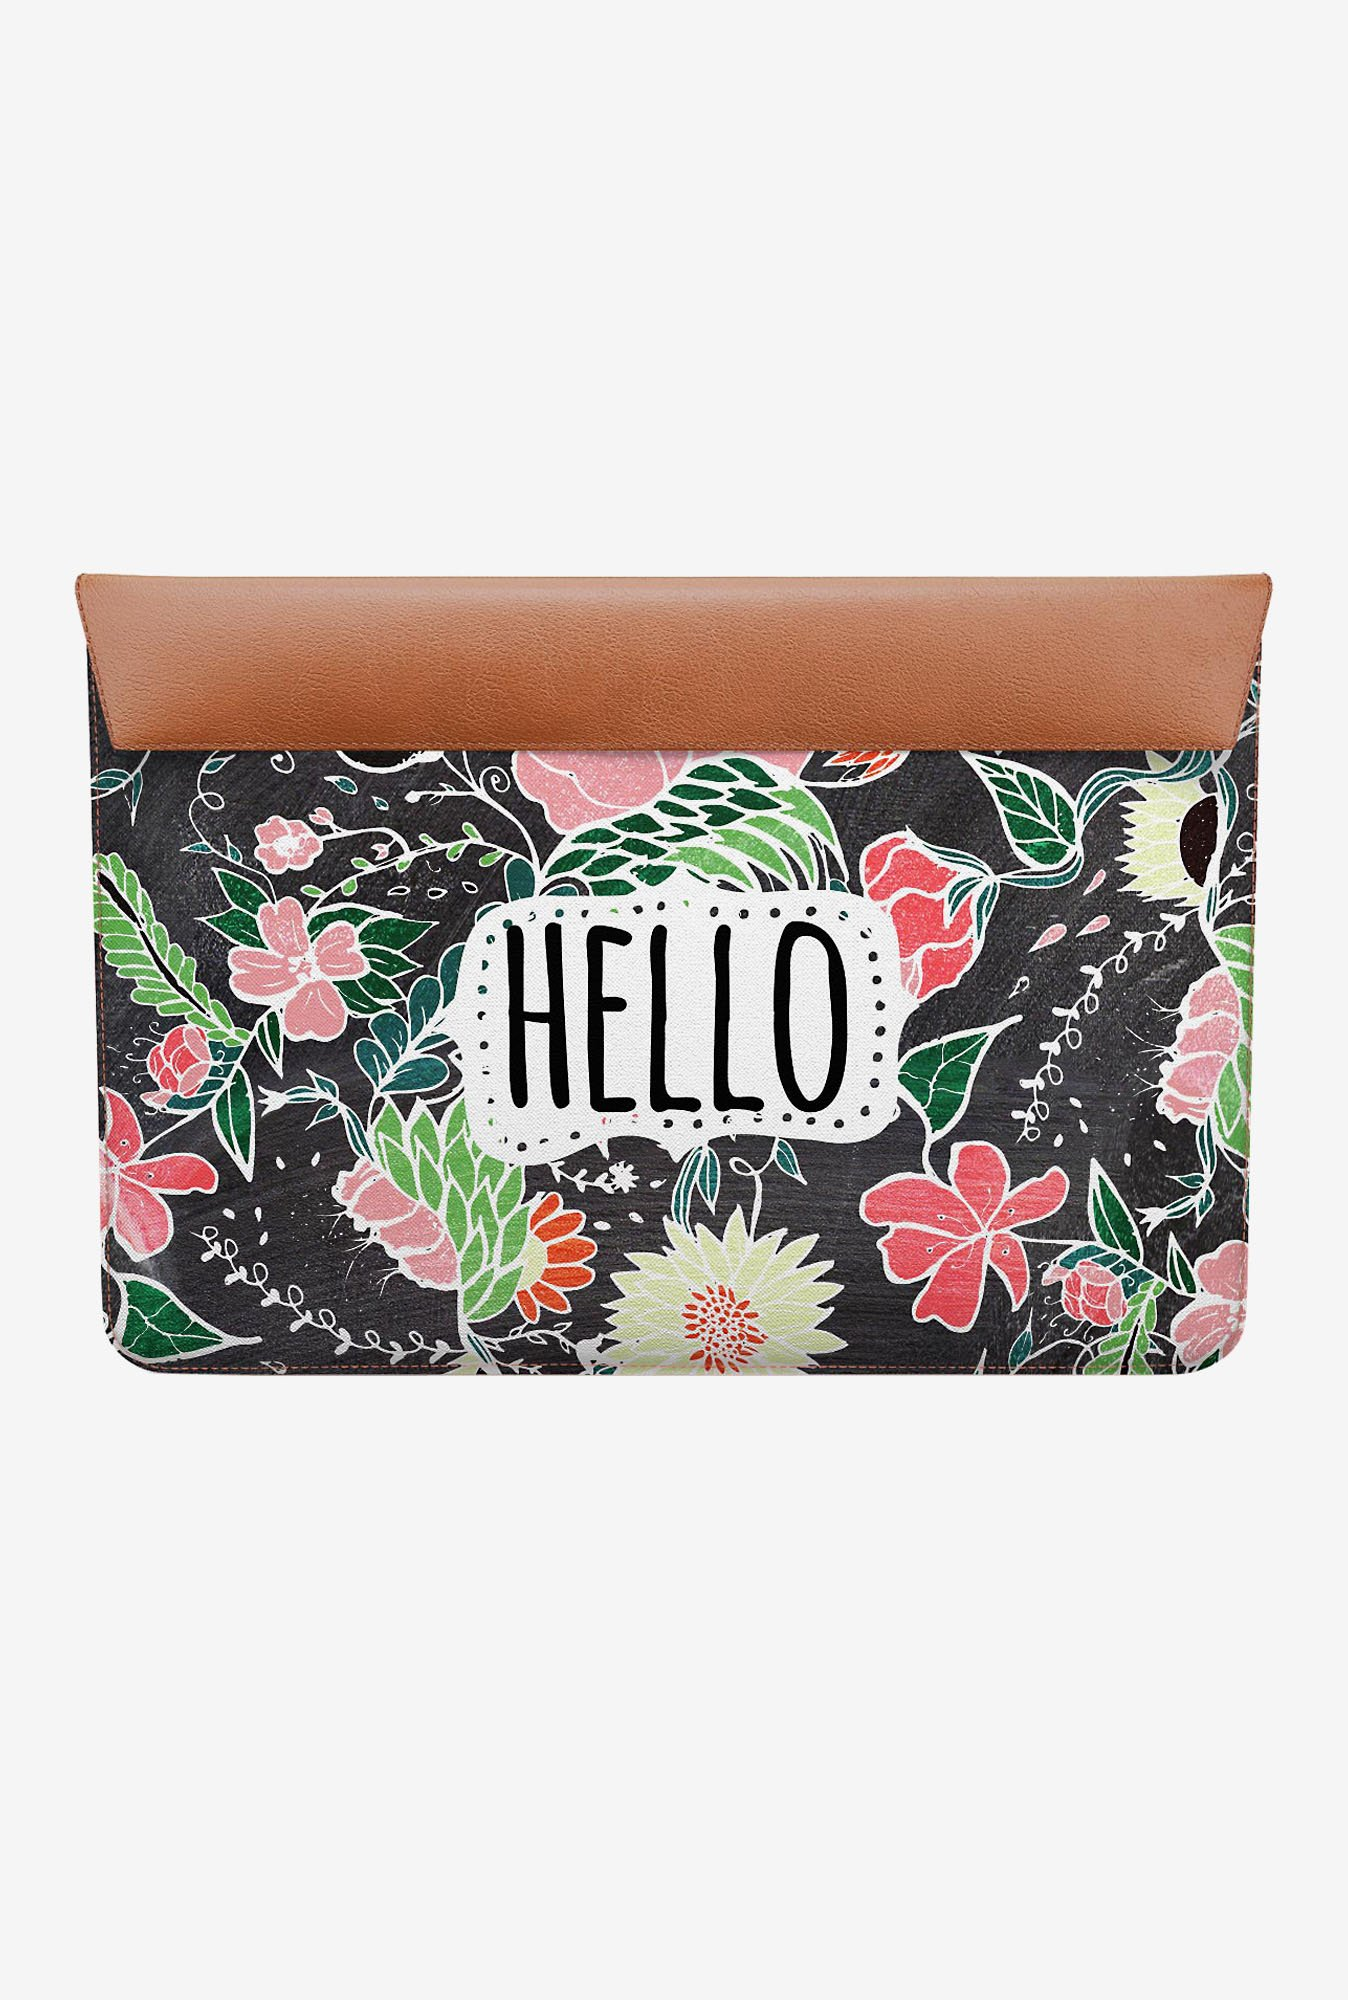 DailyObjects Flowers Hello MacBook Pro 15 Envelope Sleeve